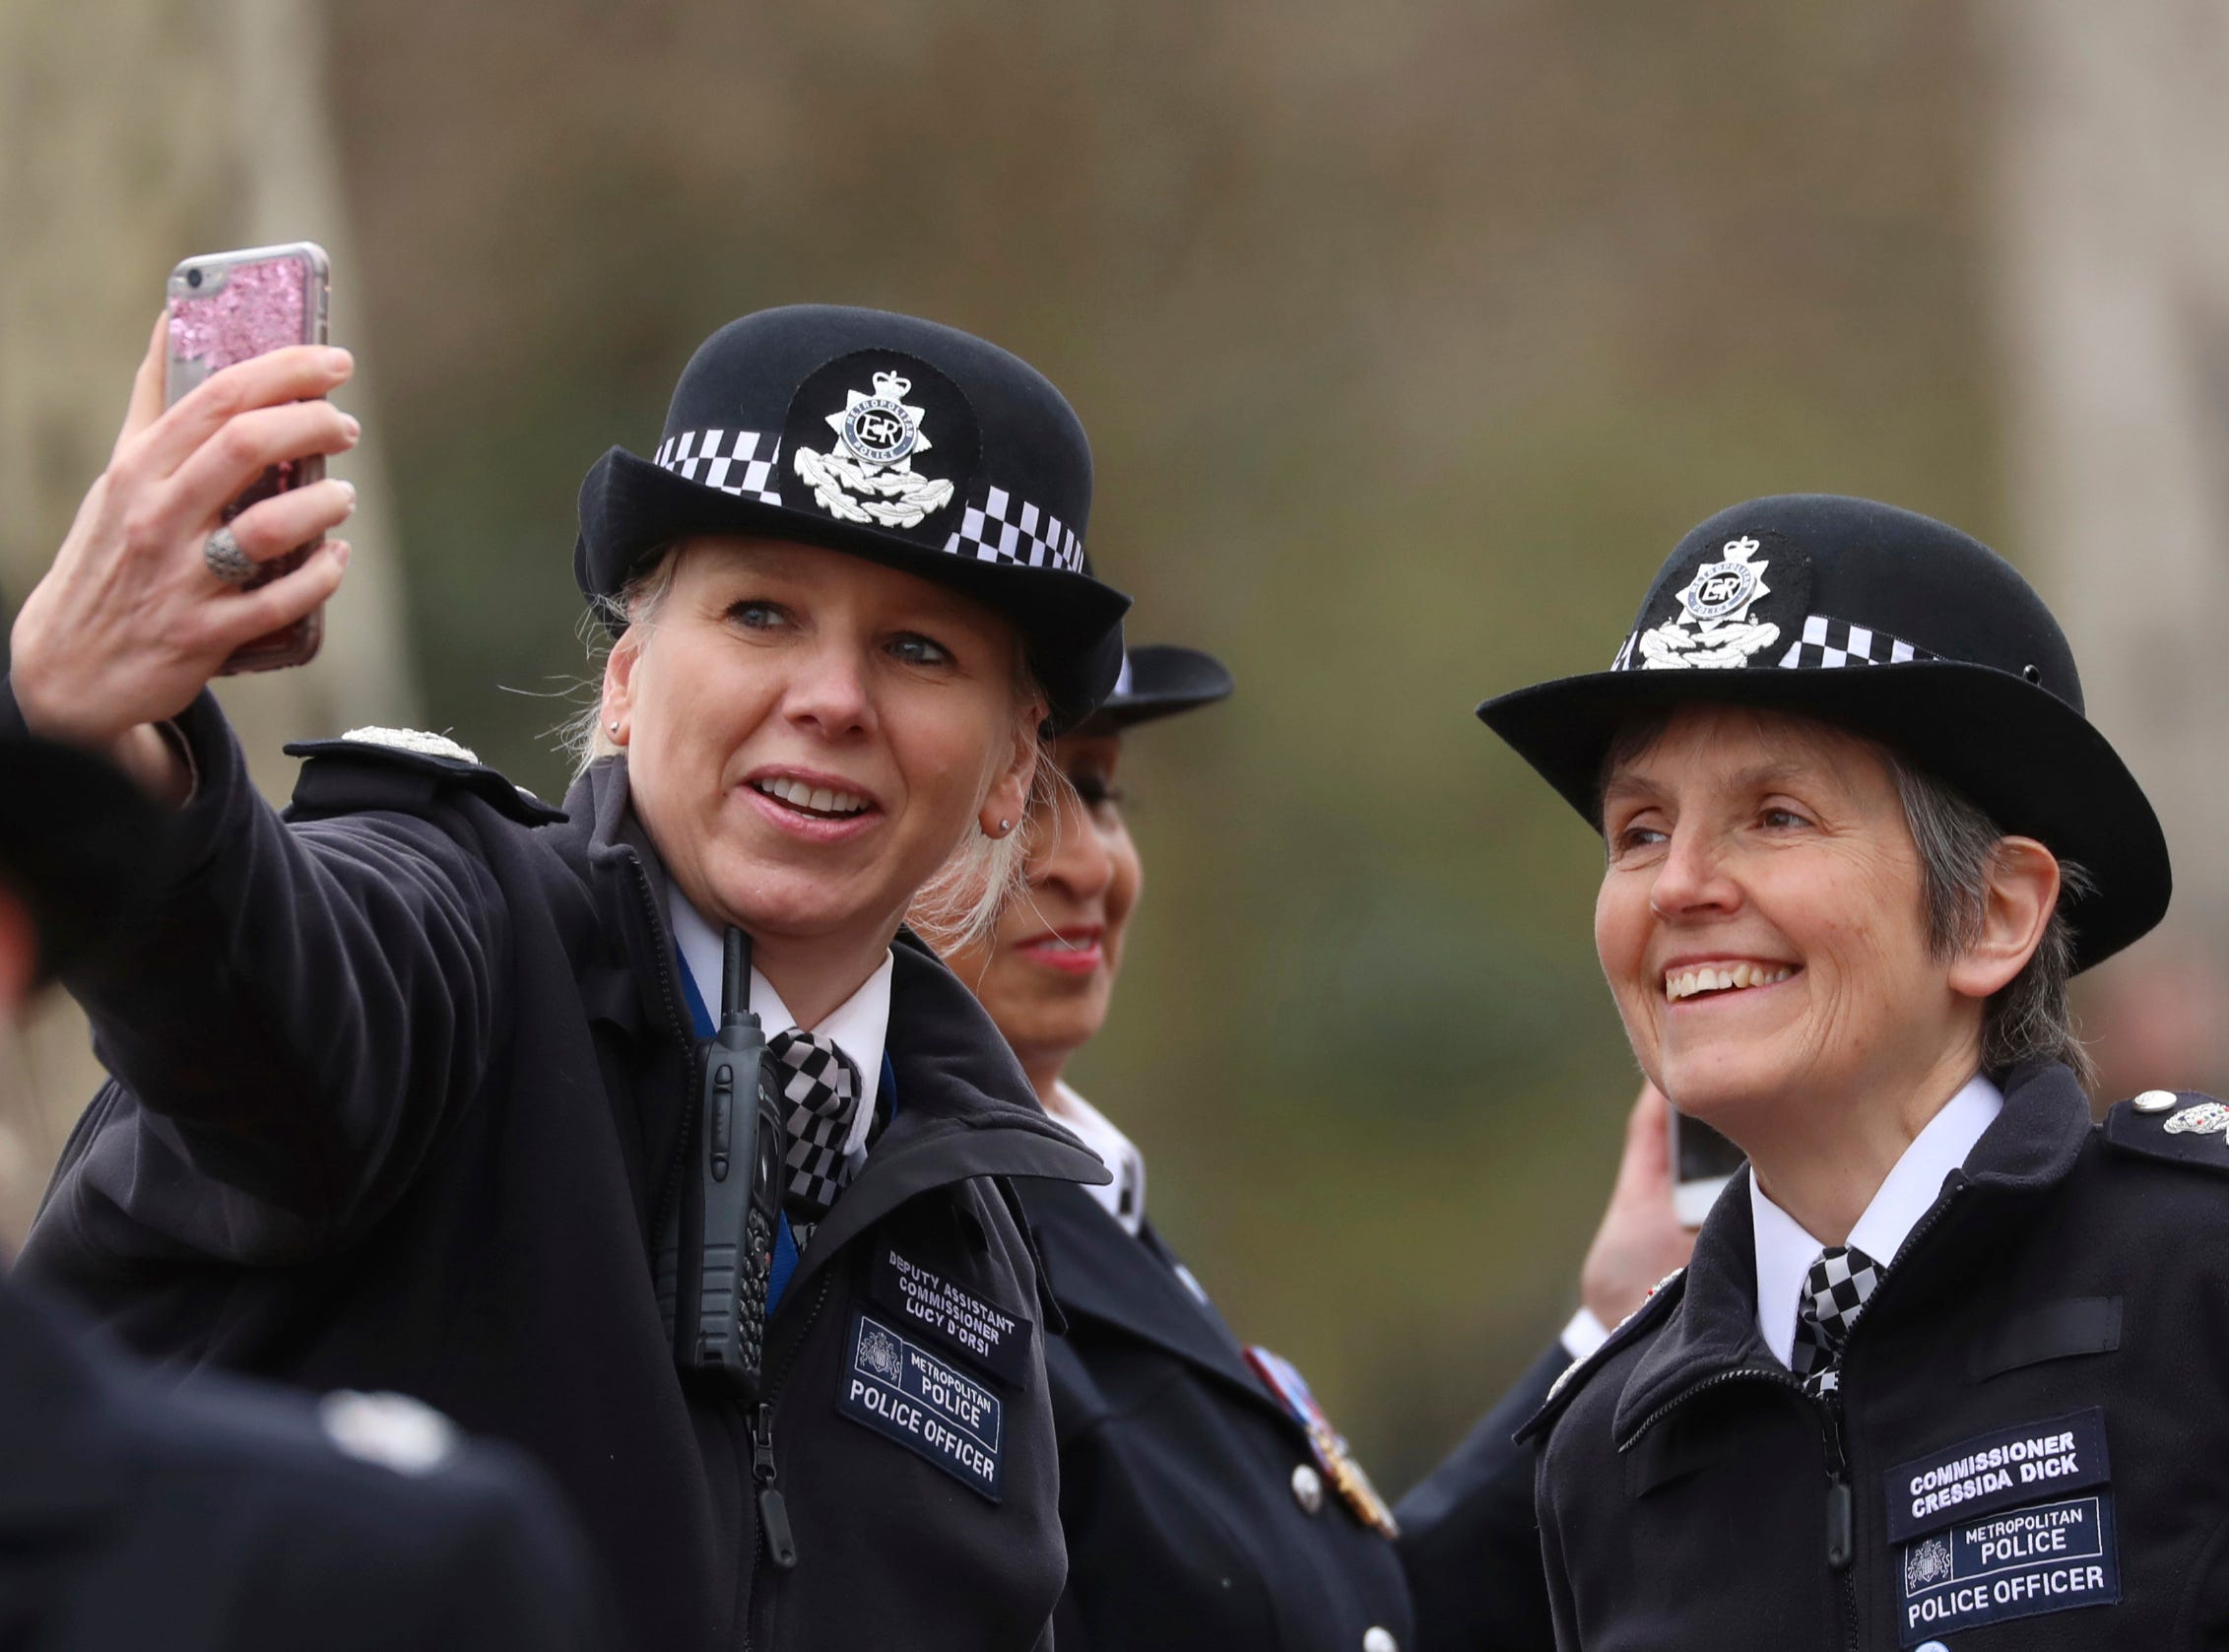 """A female police officer takes a selfie posing with Metropolitan Police Commissioner Cressida Dick, right, at the """"100 Years Strong Procession"""" in central London to mark International Women's Day, Friday March 8, 2019.  The procession supports IWD, and marks 100-years since women were allowed to join the the Metropolitan Police. (Isabel Infantes/PA via AP)"""